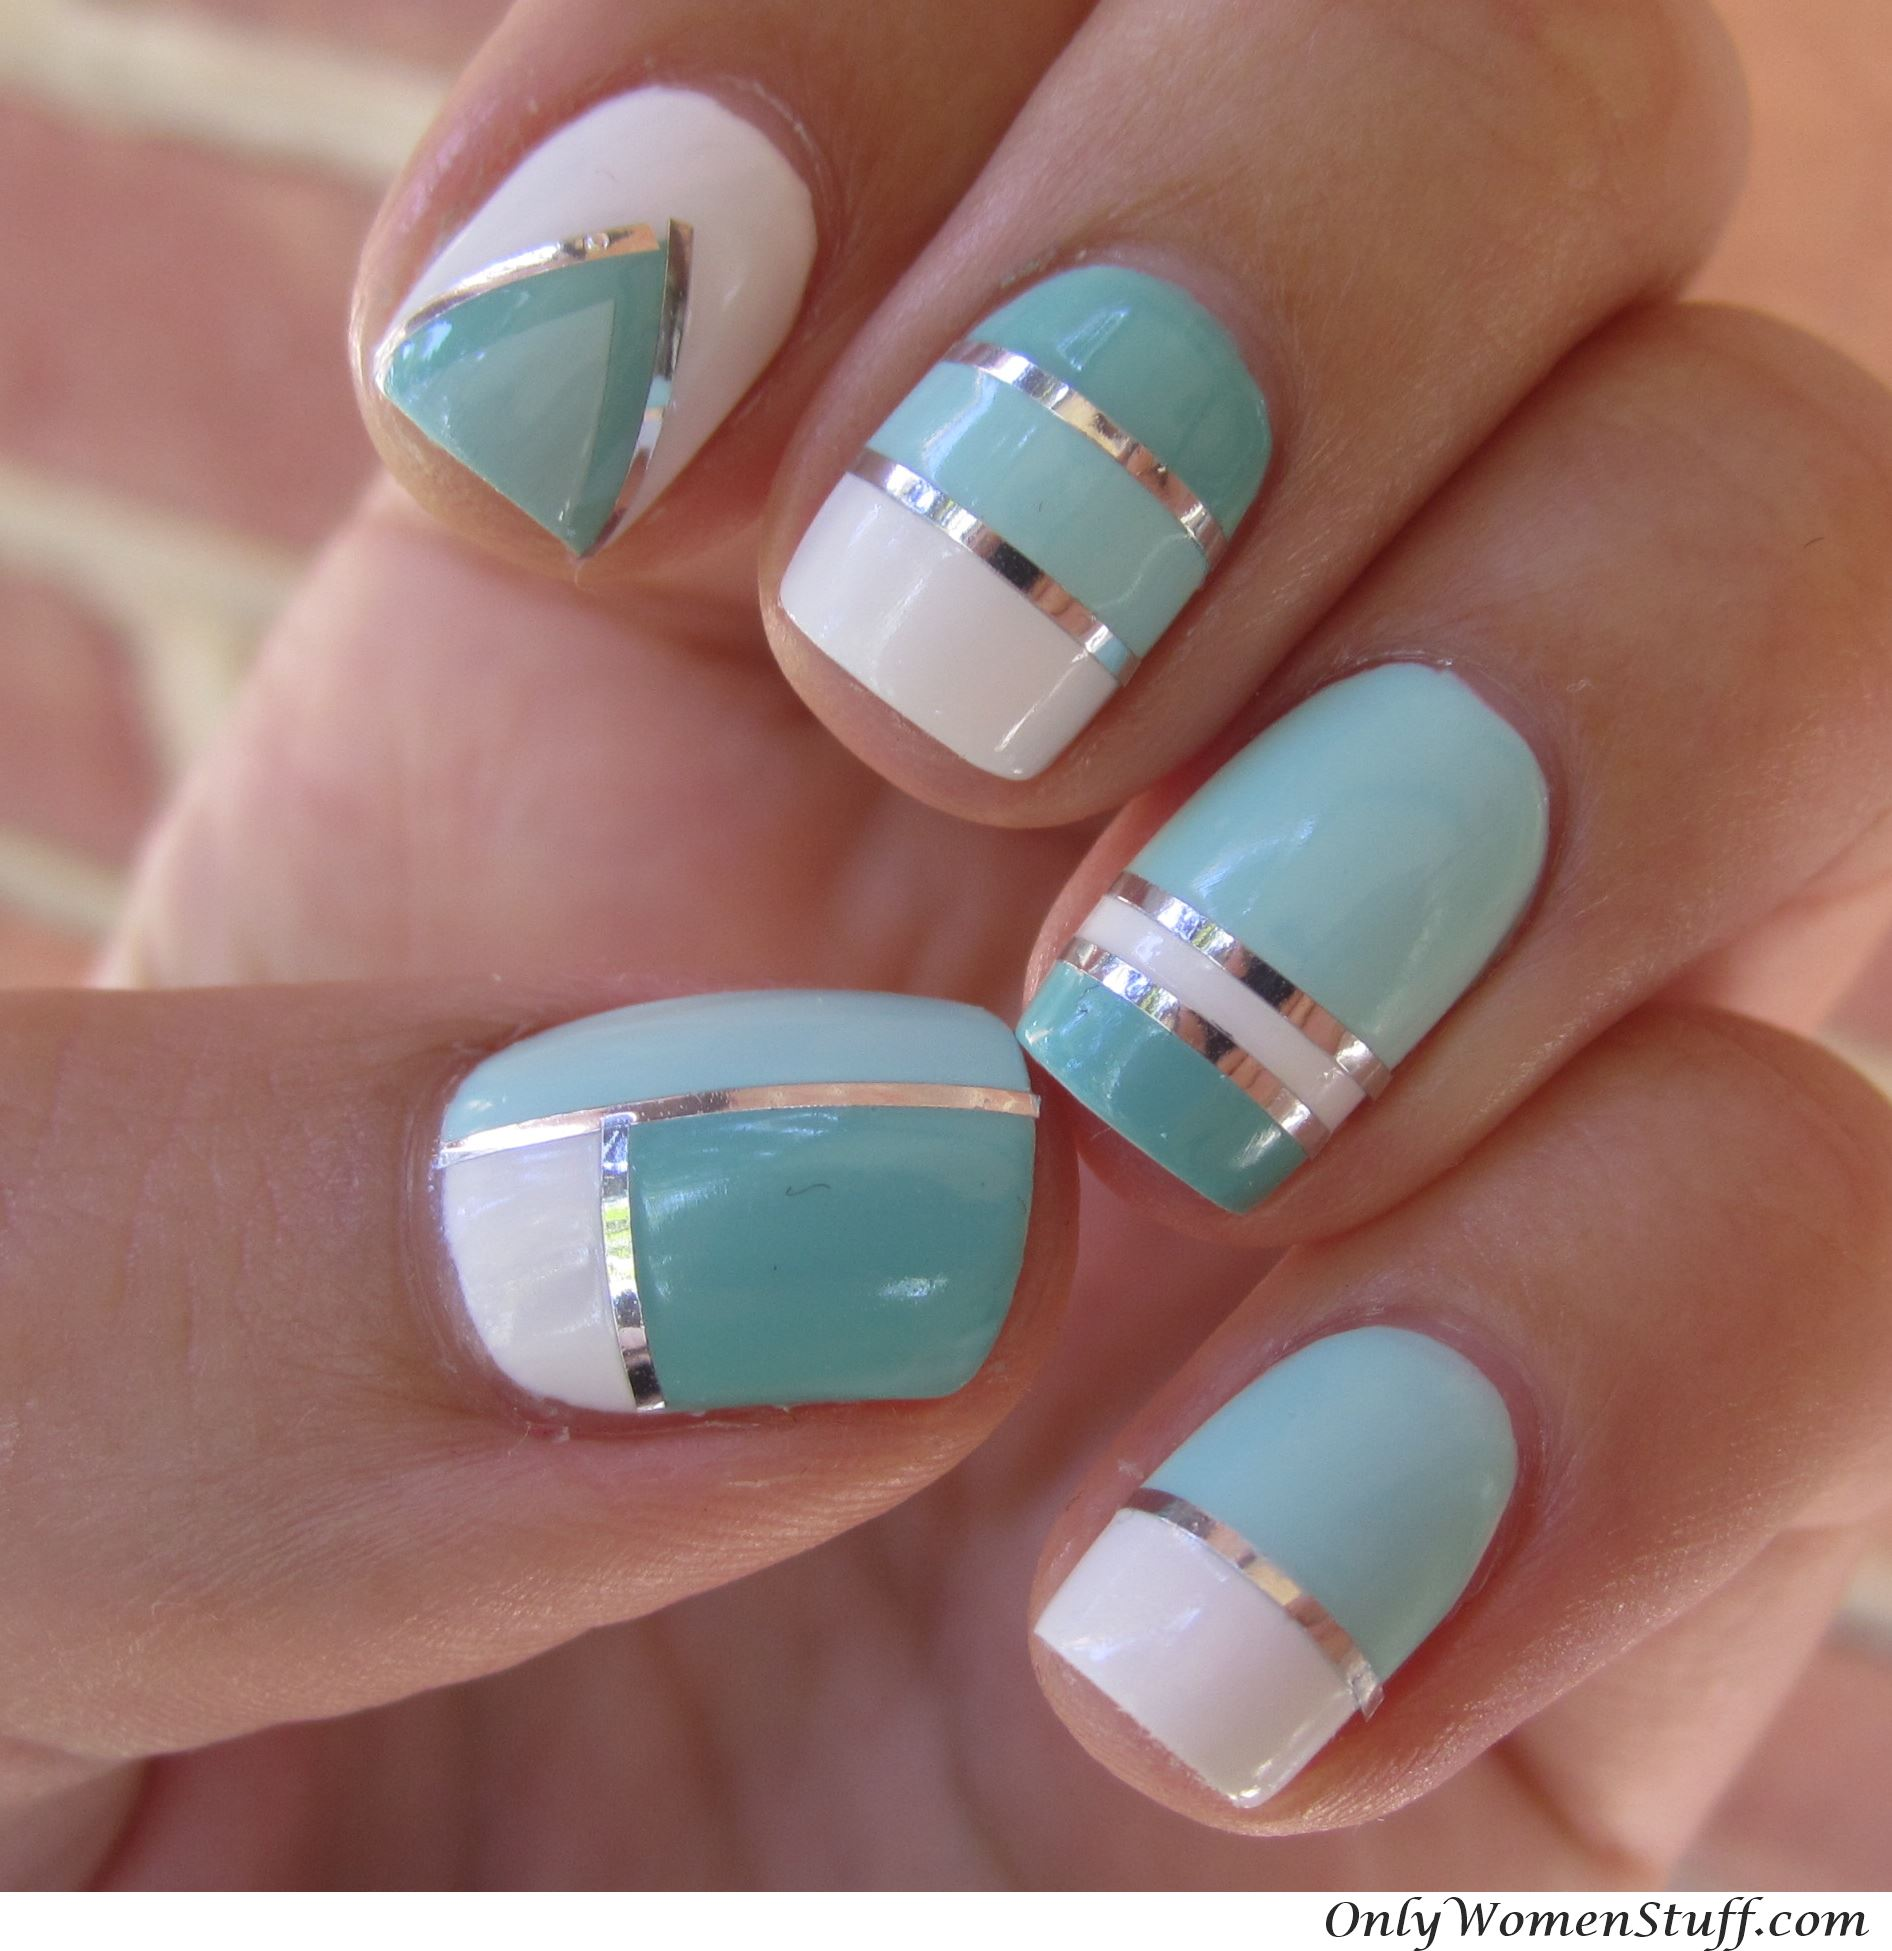 Nail art simple designs for short nails best nails 2018 31 cute nail art designs for short nails prinsesfo Gallery